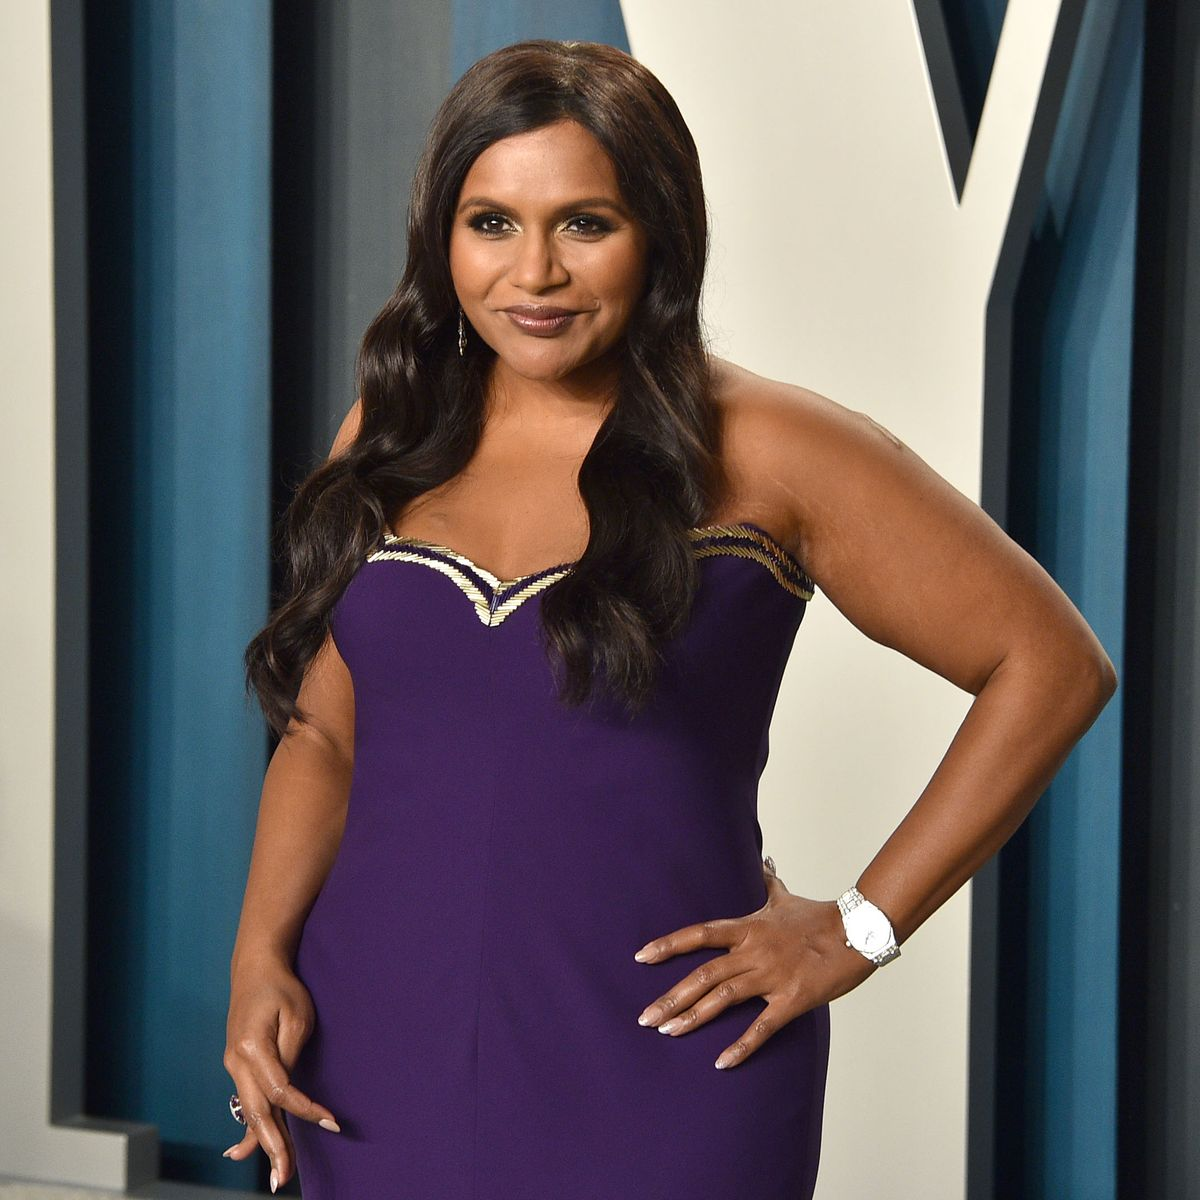 Baby mindy kaling 'The Office':